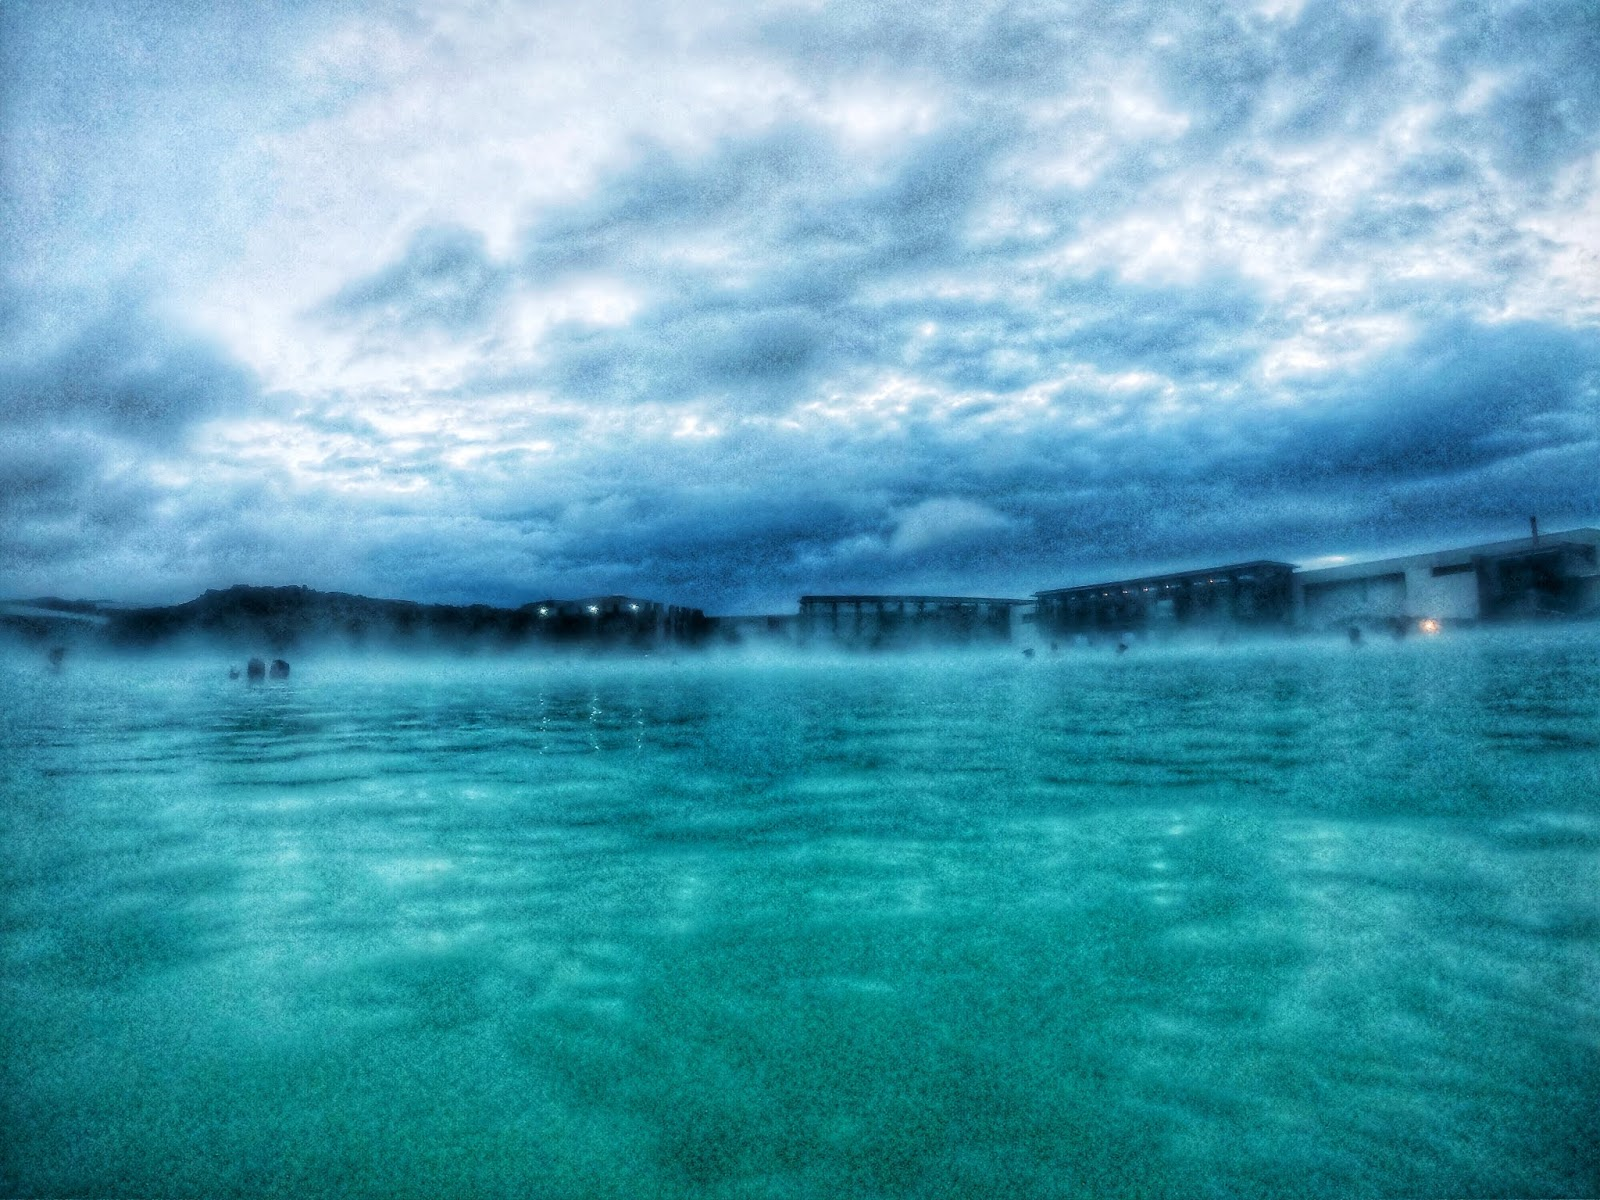 the blue lagoon, blue lagoon, the blue lagoon of iceland, iceland blue lagoon, spa, couples that travel, couples going to iceland, iceland travel, iceland adventures, couples that travel, couples jumping, cute couples jumping, jumping couples photos, cute couples traveling,